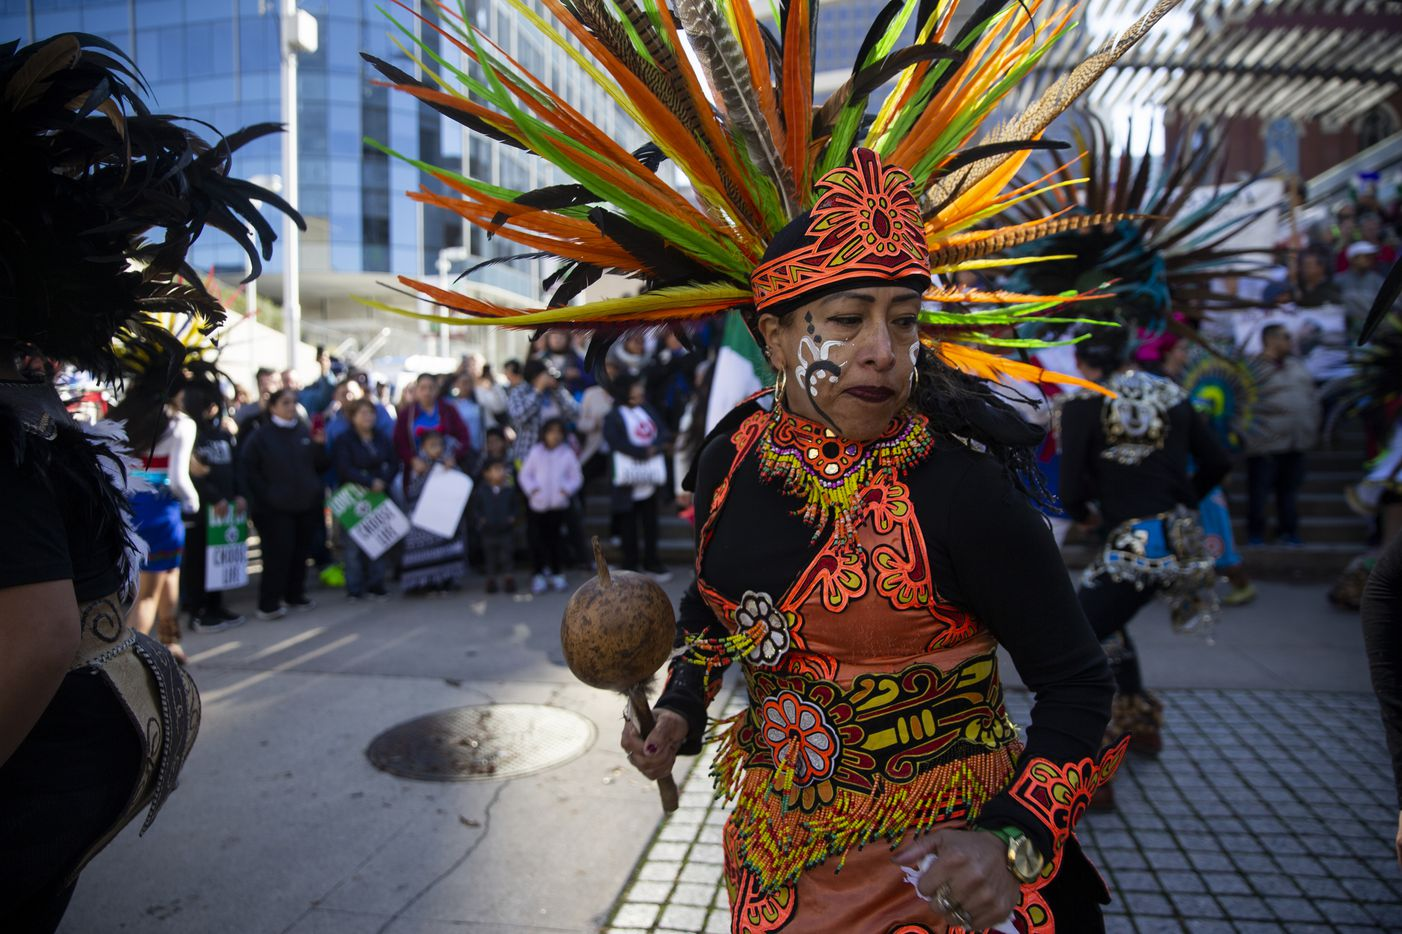 Members of Danza Guerreros Chichimecas Tonantzin performs at the Cathedral Santuario de la Virgen de Guadalupe before marching to the Earle Cabell Federal Courthouse during the North Texas March for Life on Saturday, Jan. 18, 2020.